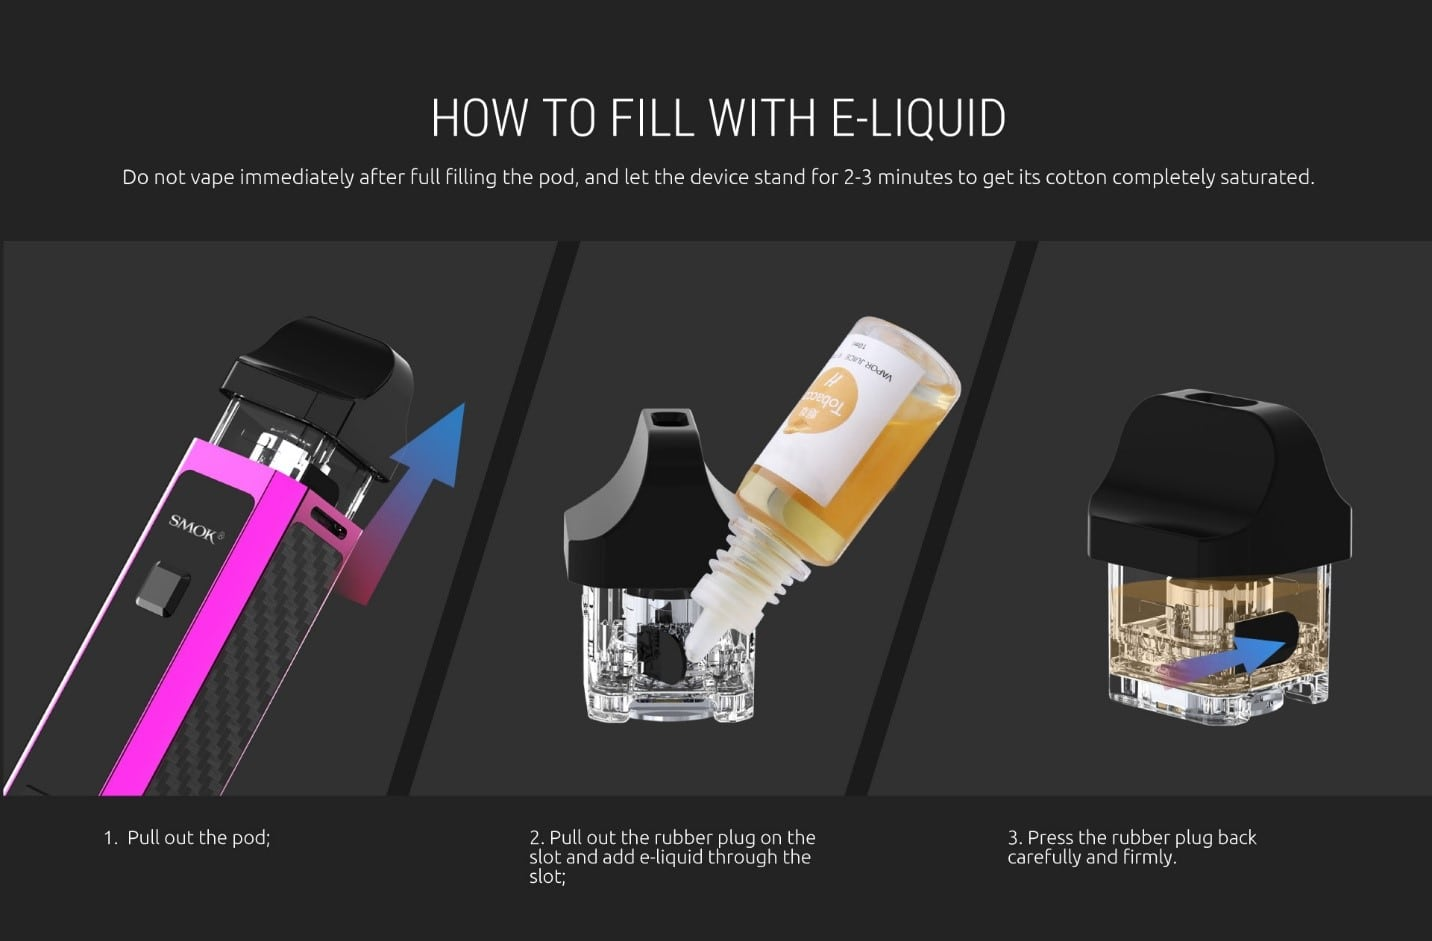 Buy SMOK RPM40 Pod Mod and enjoy vaping! Find the latest electronic cigarettes from SMOK, VooPoo, Aspire and Joyetech at vape shop!